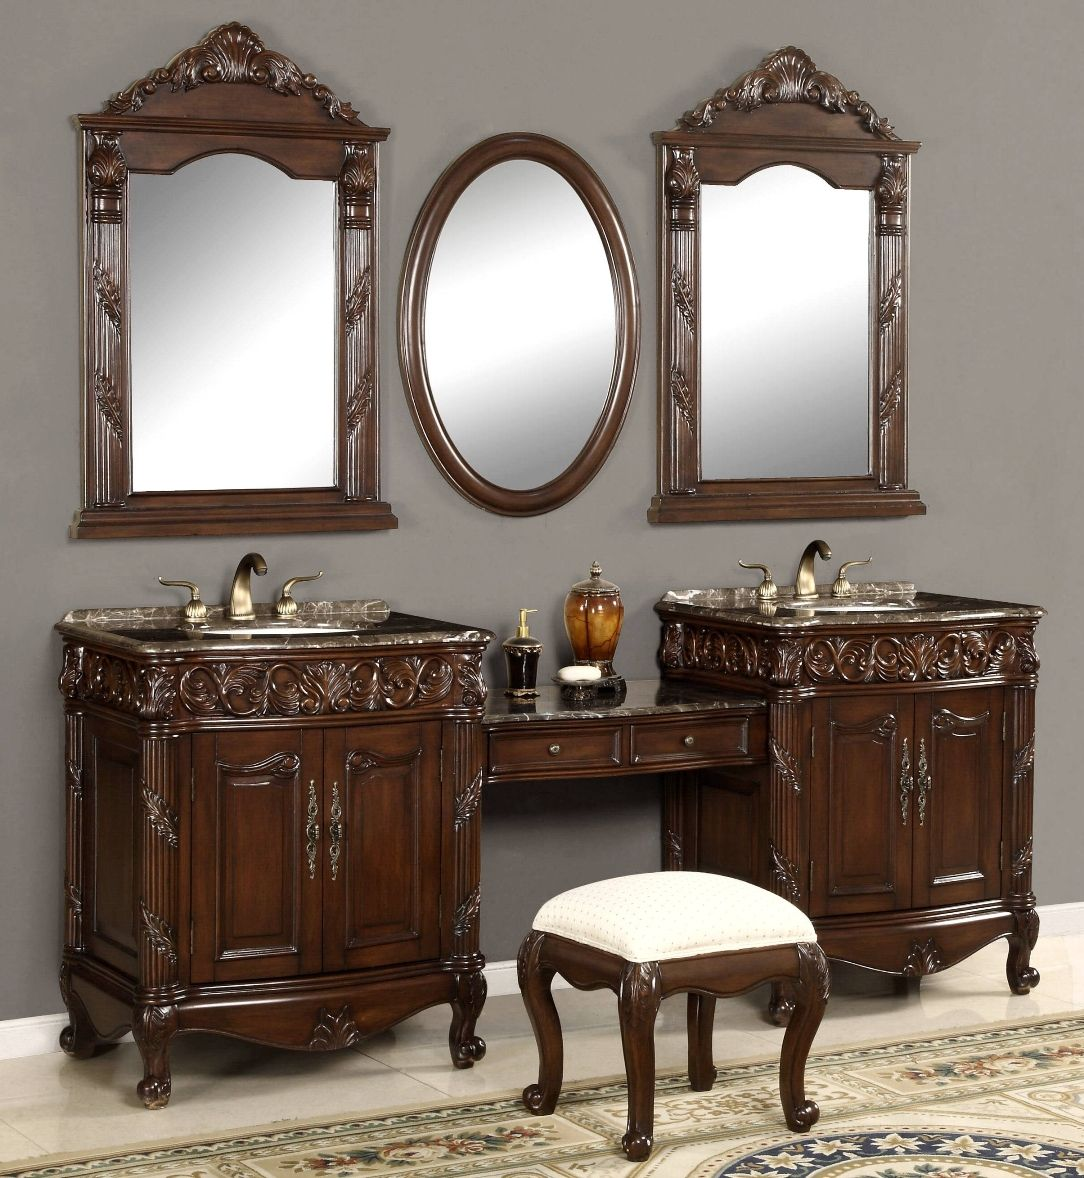 Unique Double Vanity Sink 87 Inch Double Vanities Vanity Make Up Stool Bathroom